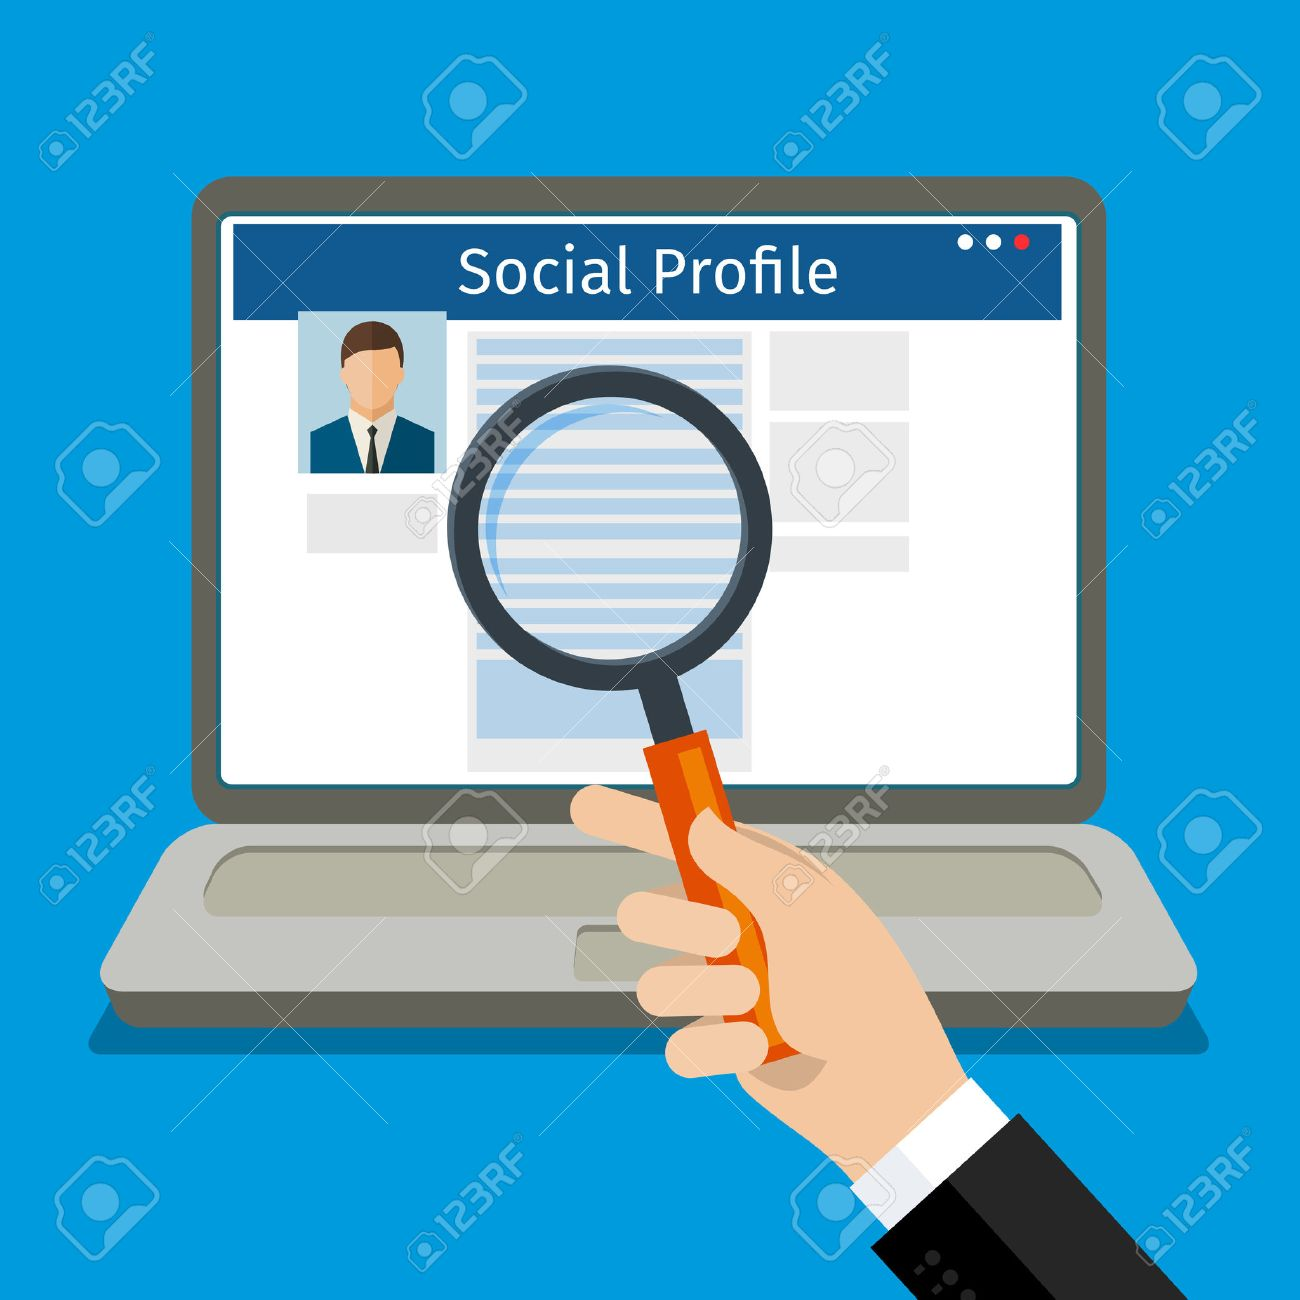 Search Social Profile. Laptop with social network. Flat design, vector illustration. - 53290734